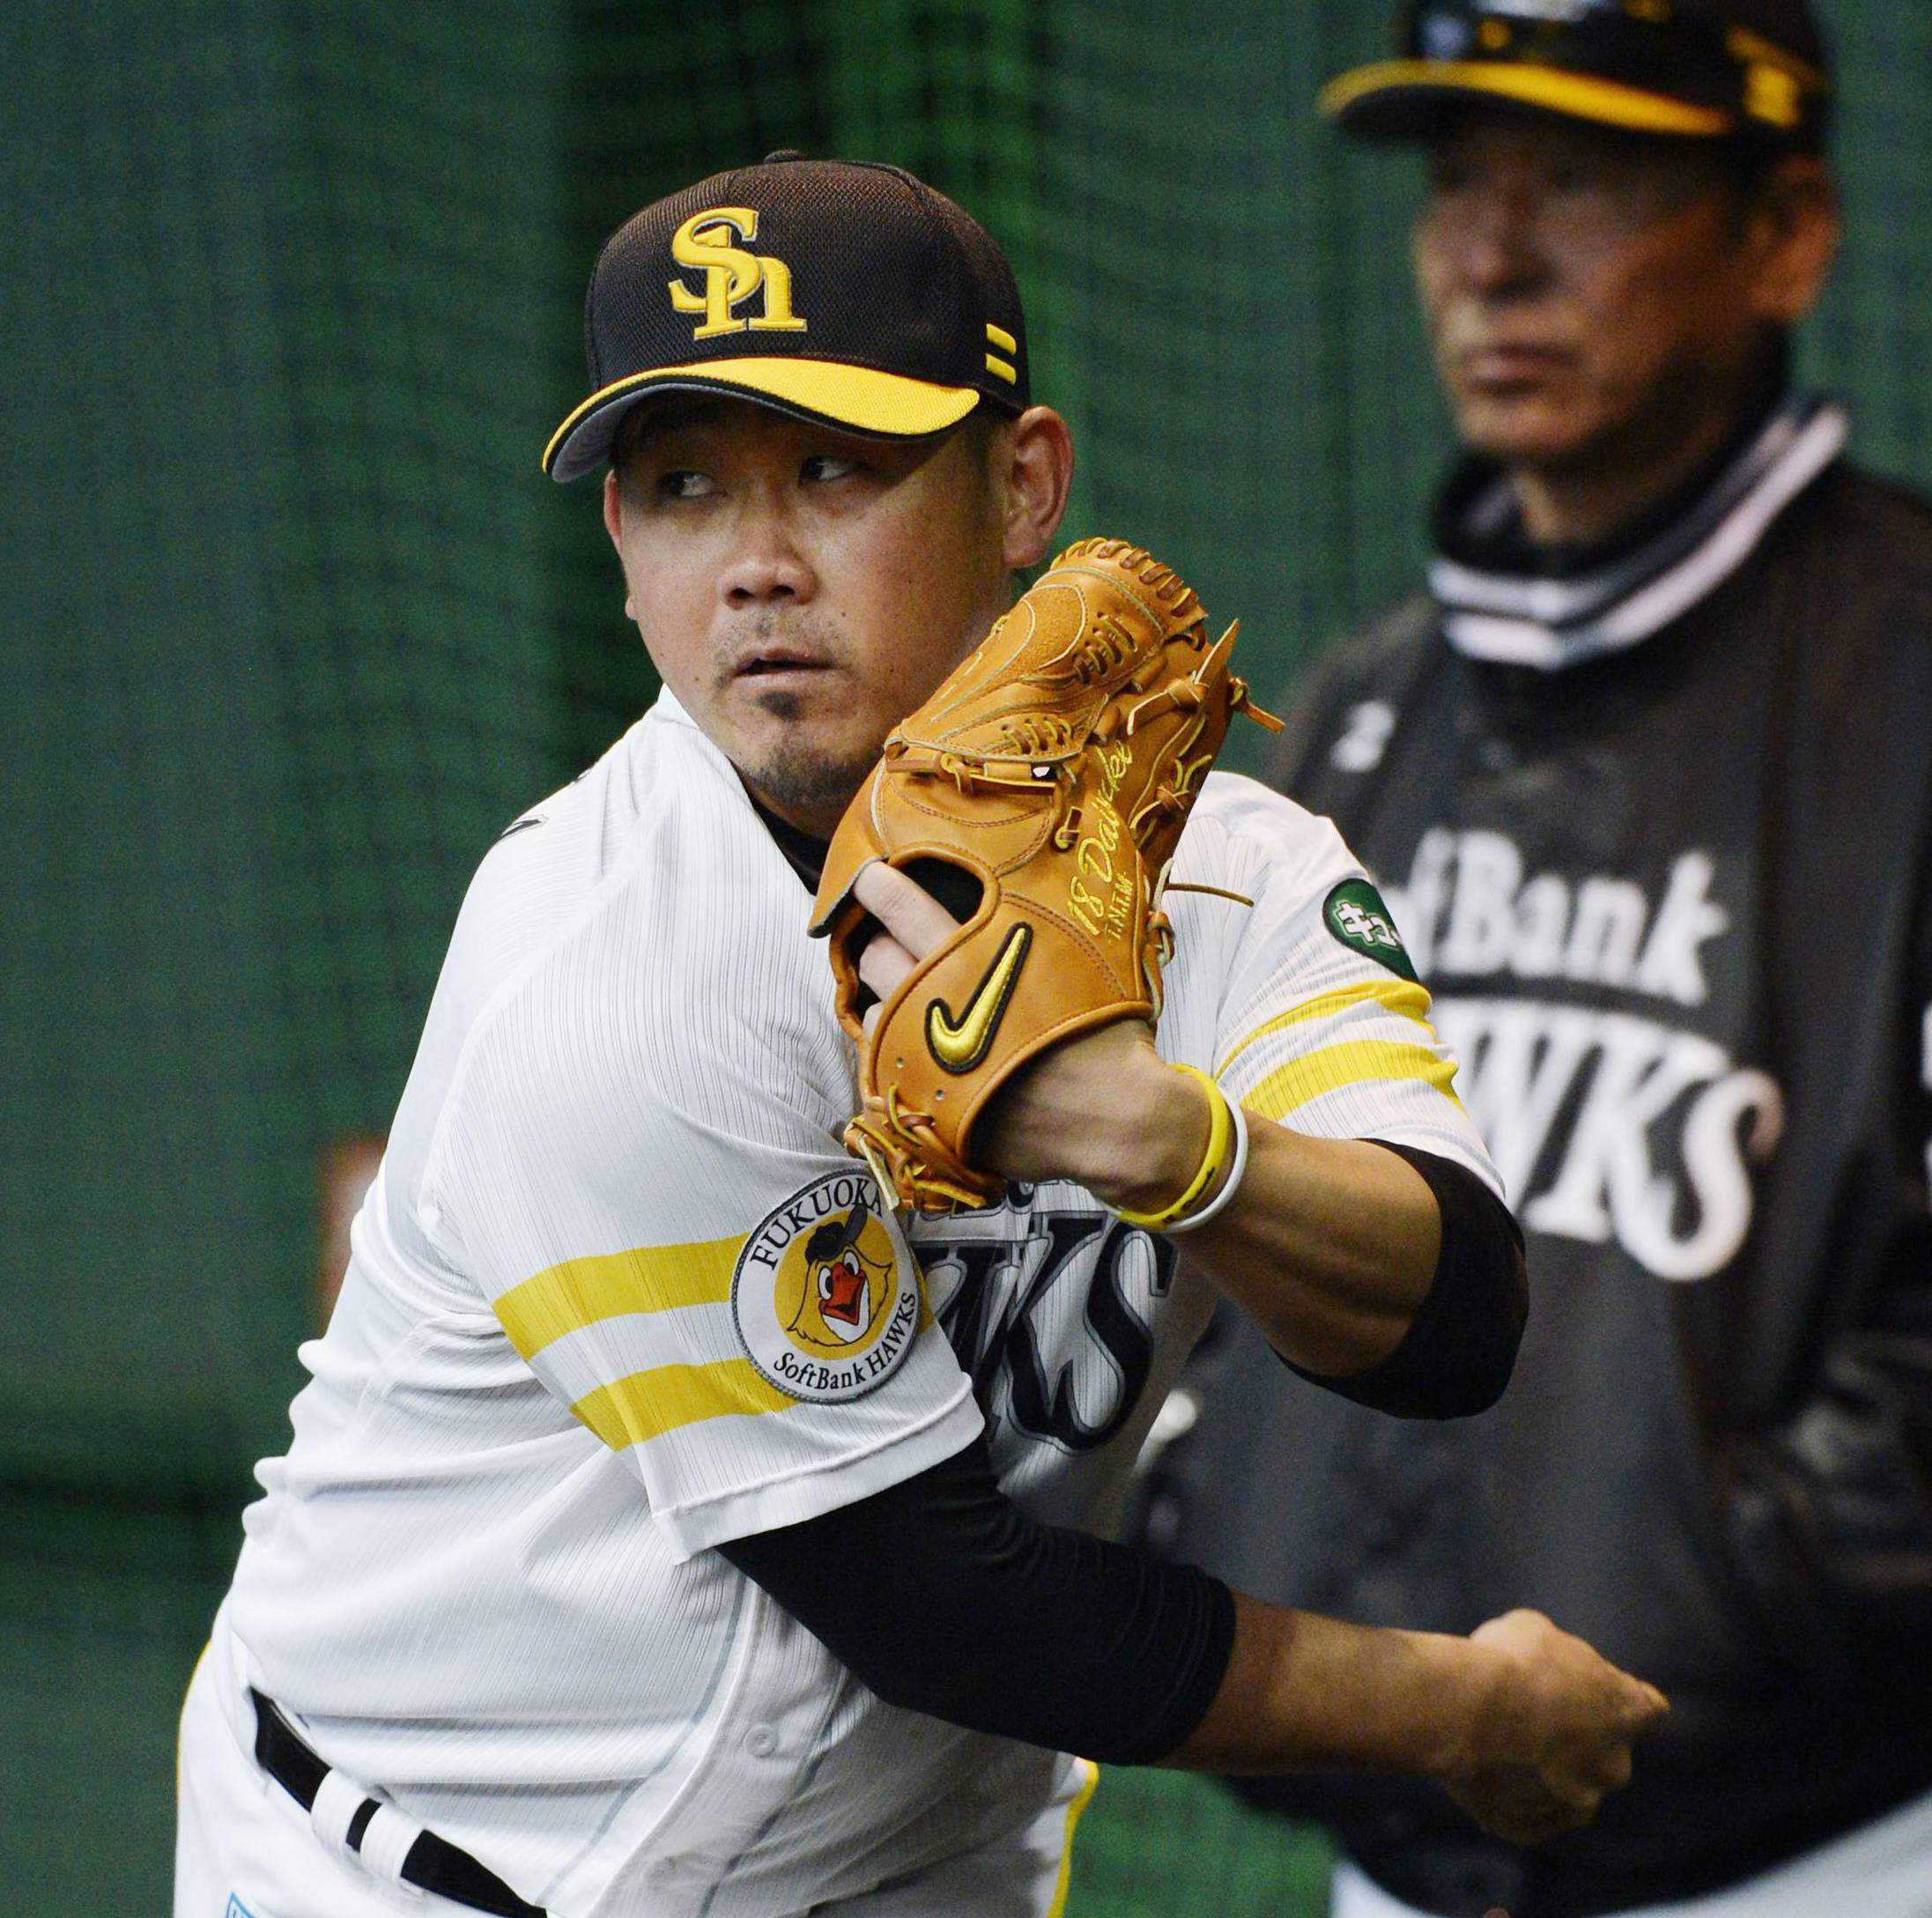 Two-time World Baseball Classic MVP Daisuke Matsuzaka has yet to pitch in a game for the Fukuoka Softbank Hawks this season due to an injury to his right shoulder. | KYODO